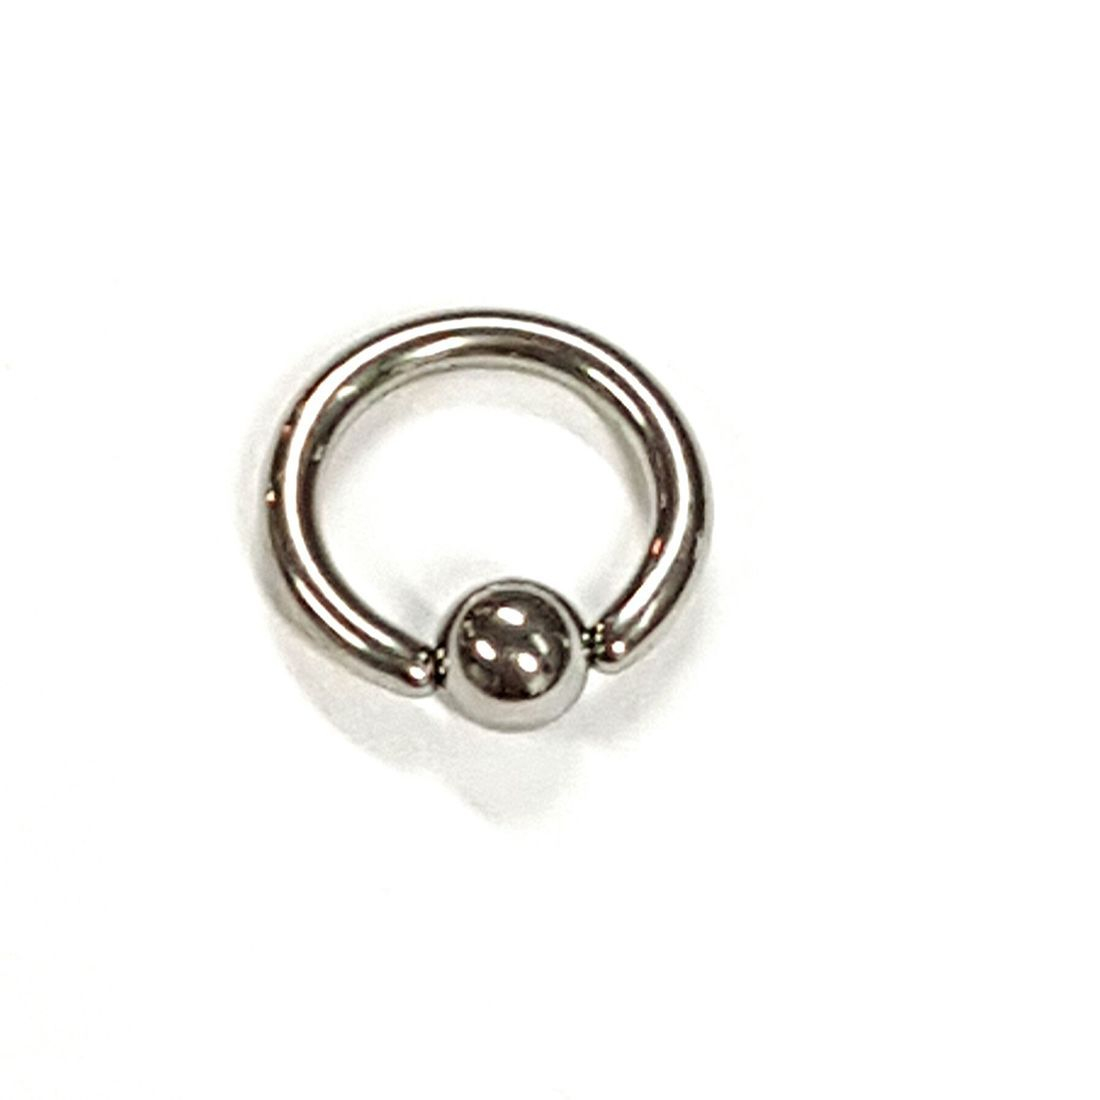 1.2mm x 6mm Silver Ball Closure Ring